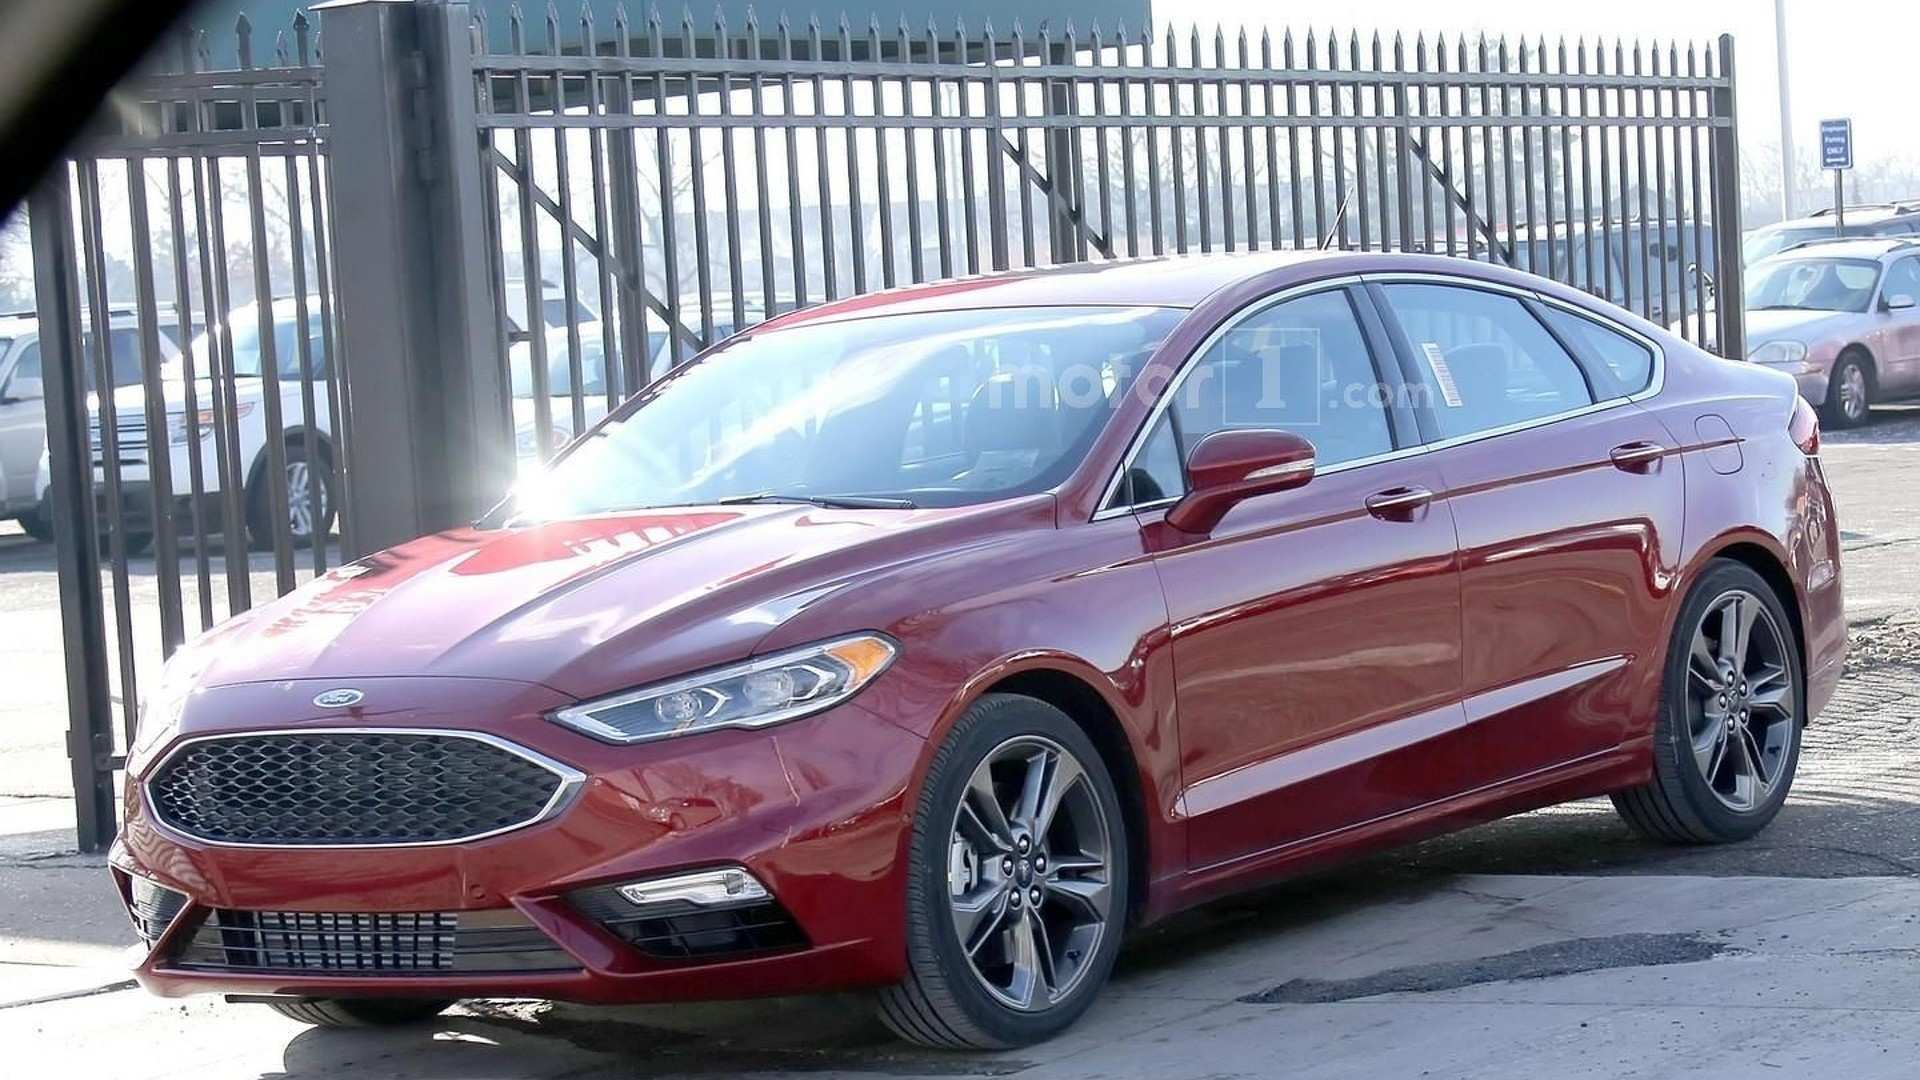 20 All New 2019 The Spy Shots Ford Fusion Release Date And Concept